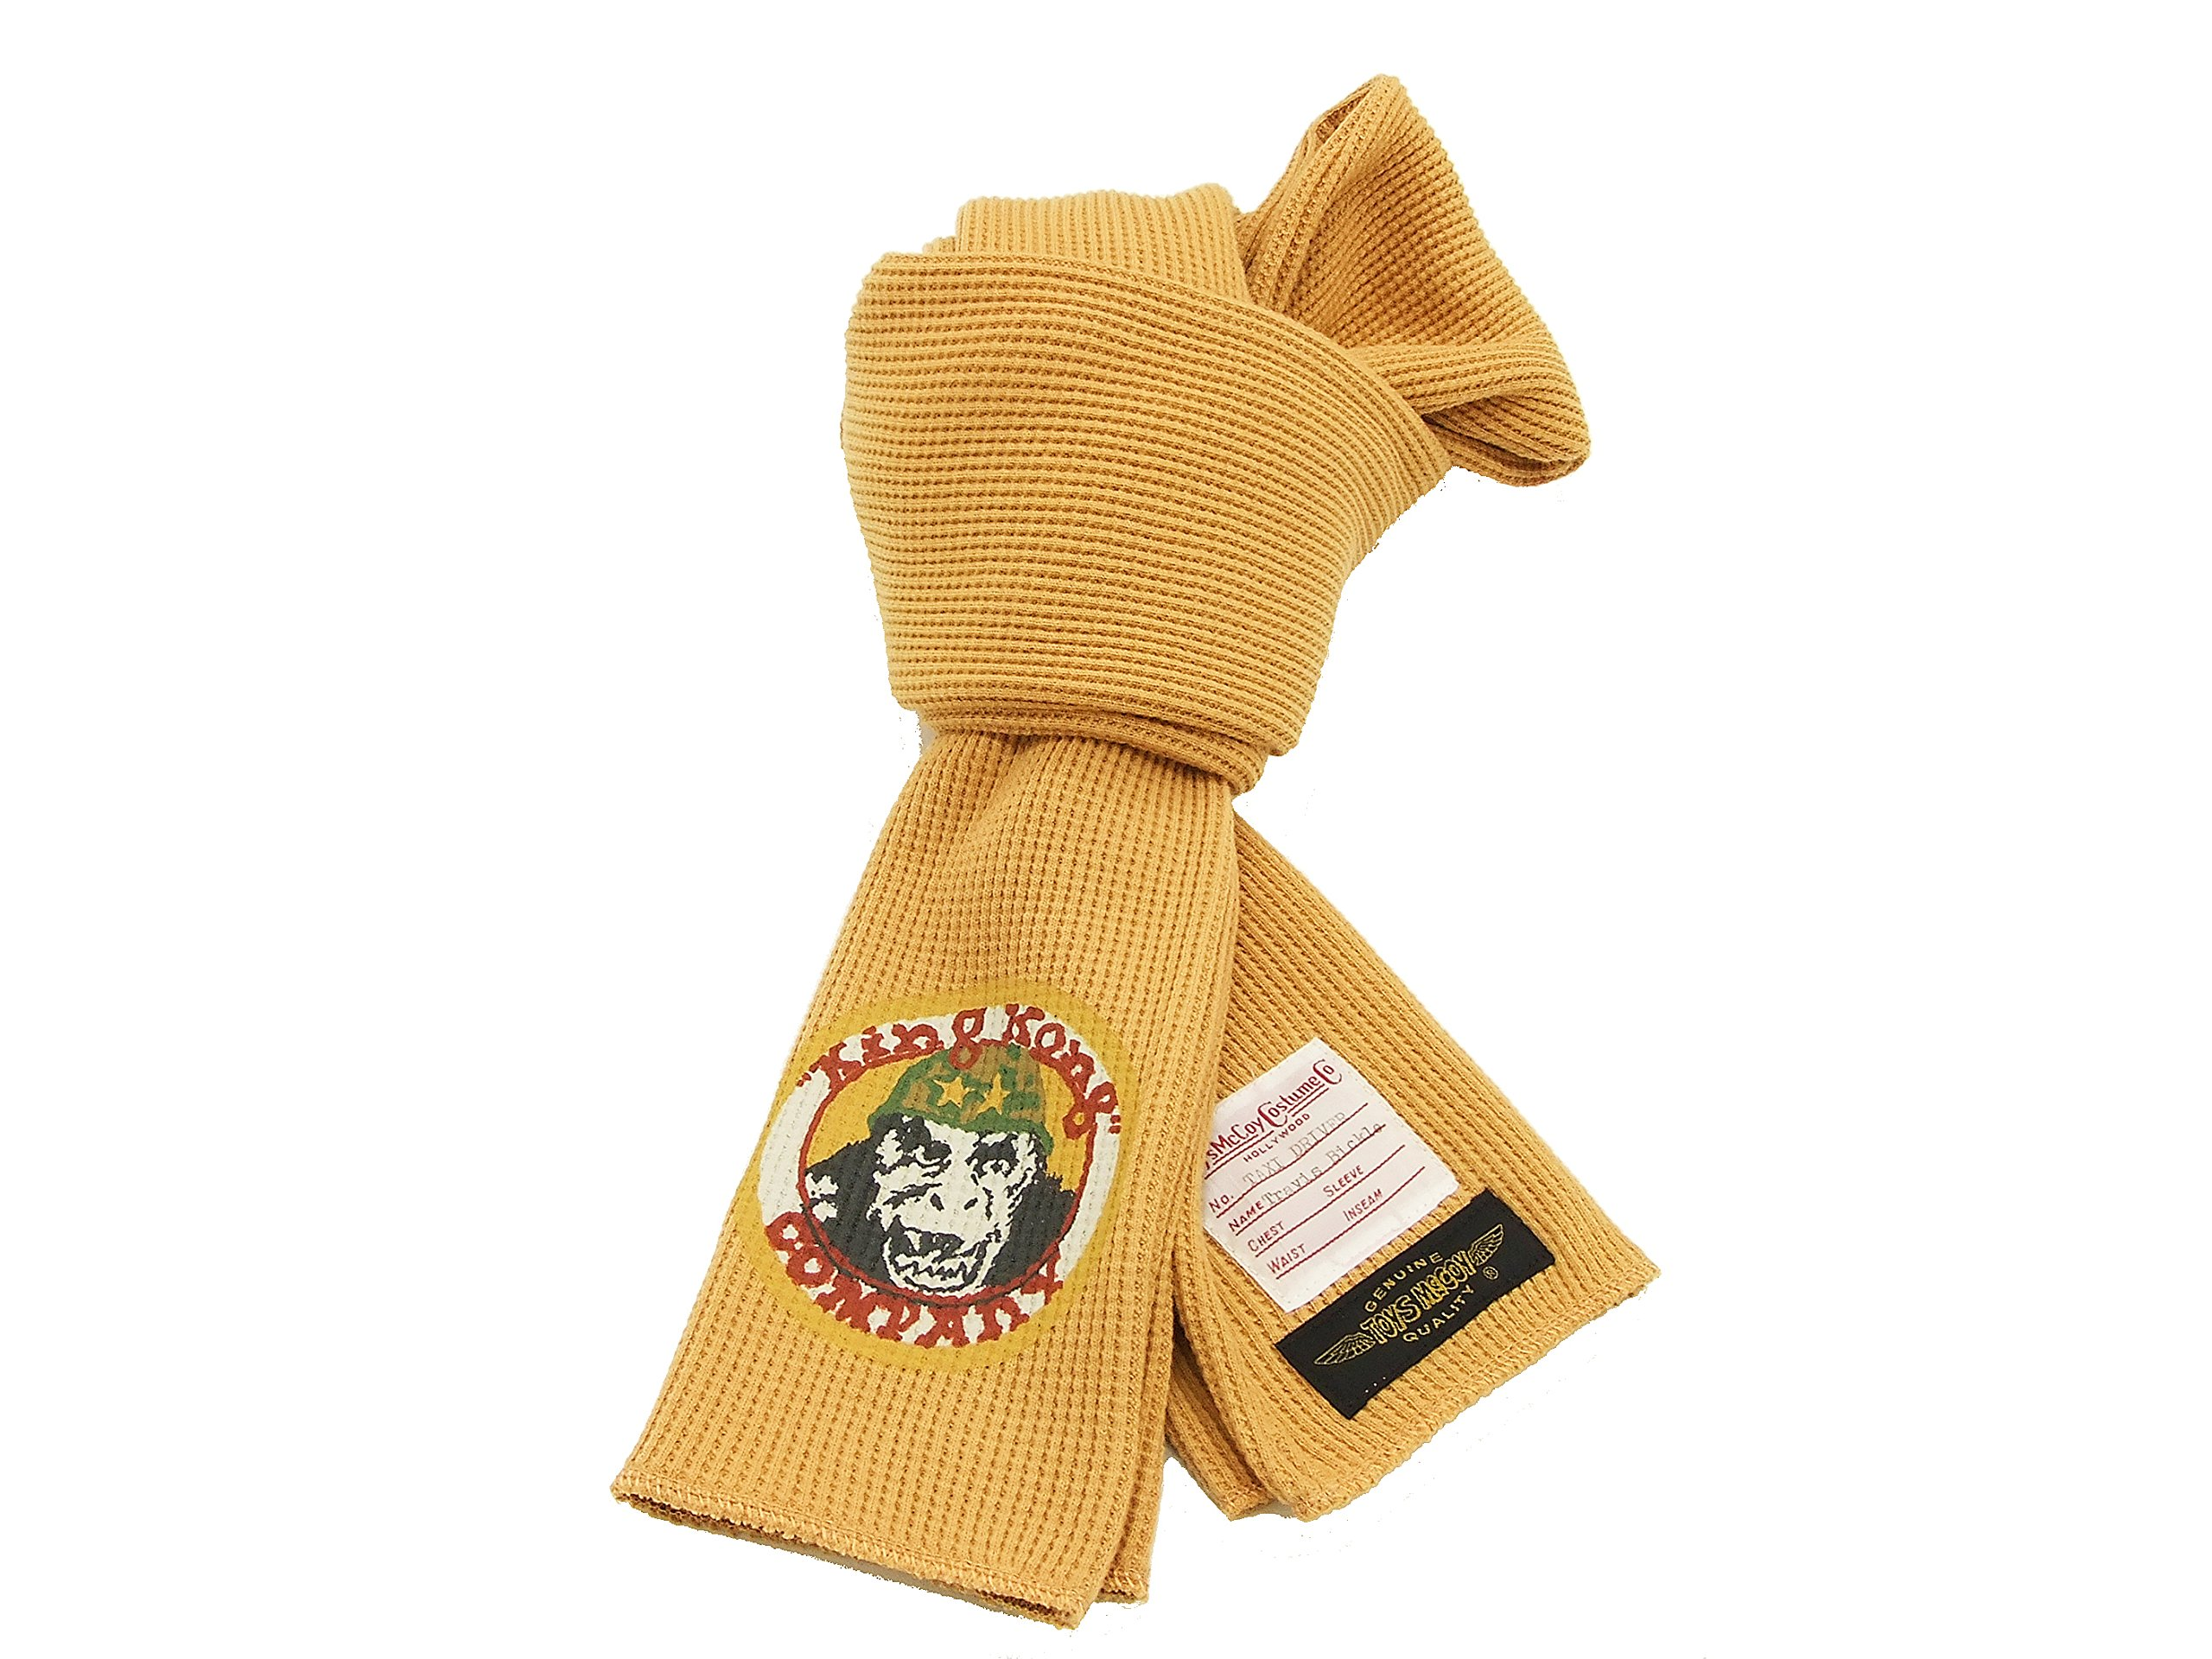 TOYS McCOY Men's Scarf Taxi Driver Waffle Thermal Scarf King Kong Company TMA1722 (One size, Gold)